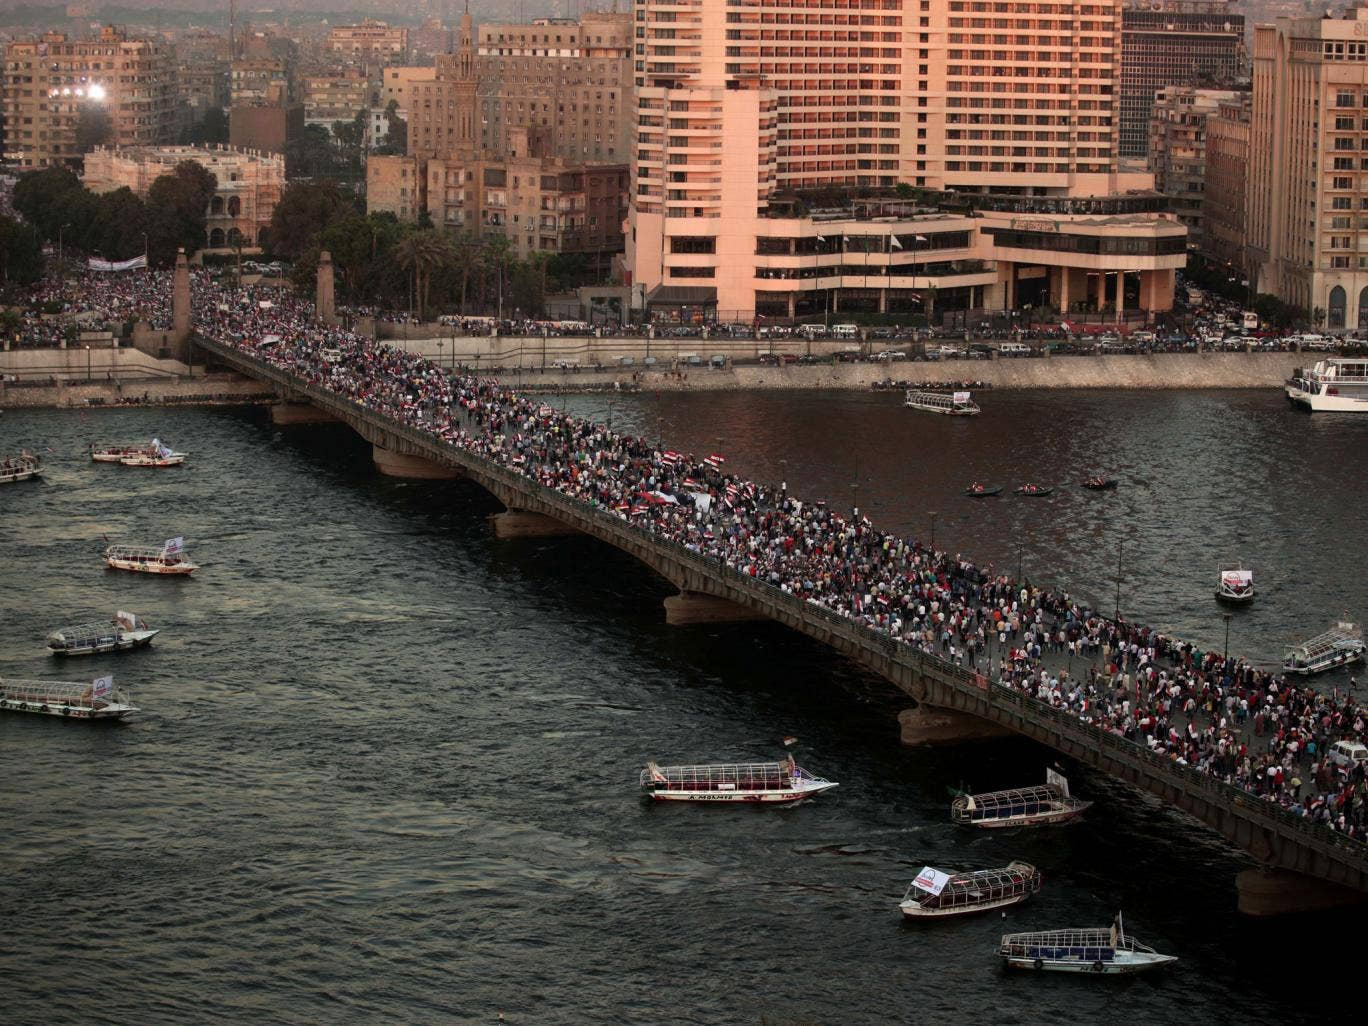 Supporters of Egypt's top military officer, Gen. Abdel-Fatah el-Sissi rally over a bridge leading to Tahrir Square in Cairo